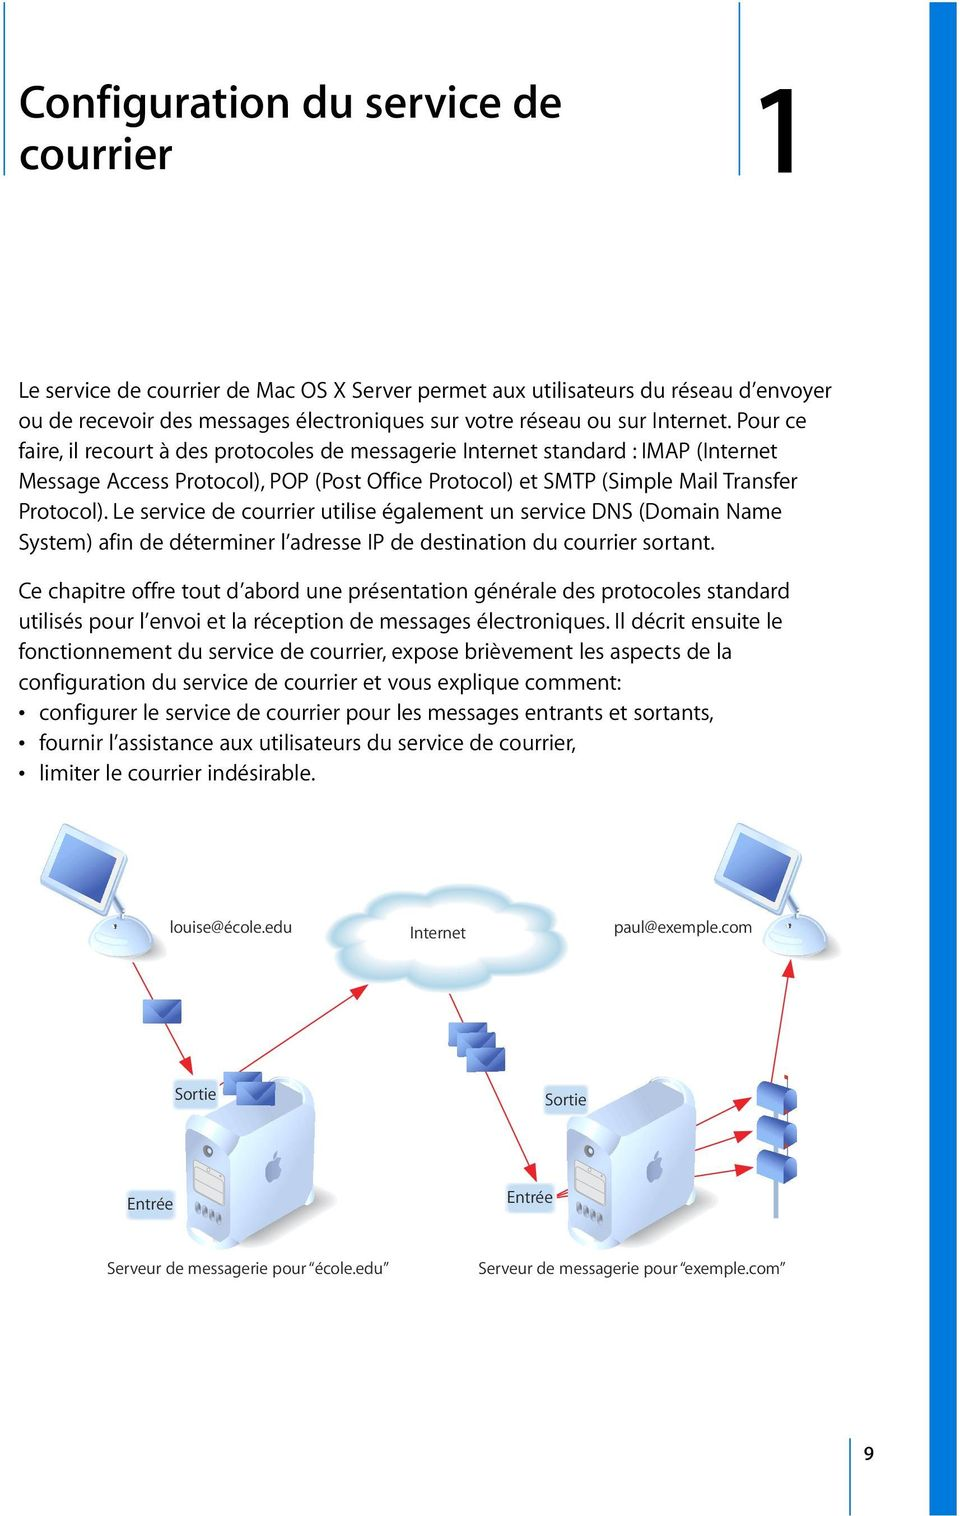 Le service de courrier utilise également un service DNS (Domain Name System) afin de déterminer l adresse IP de destination du courrier sortant.